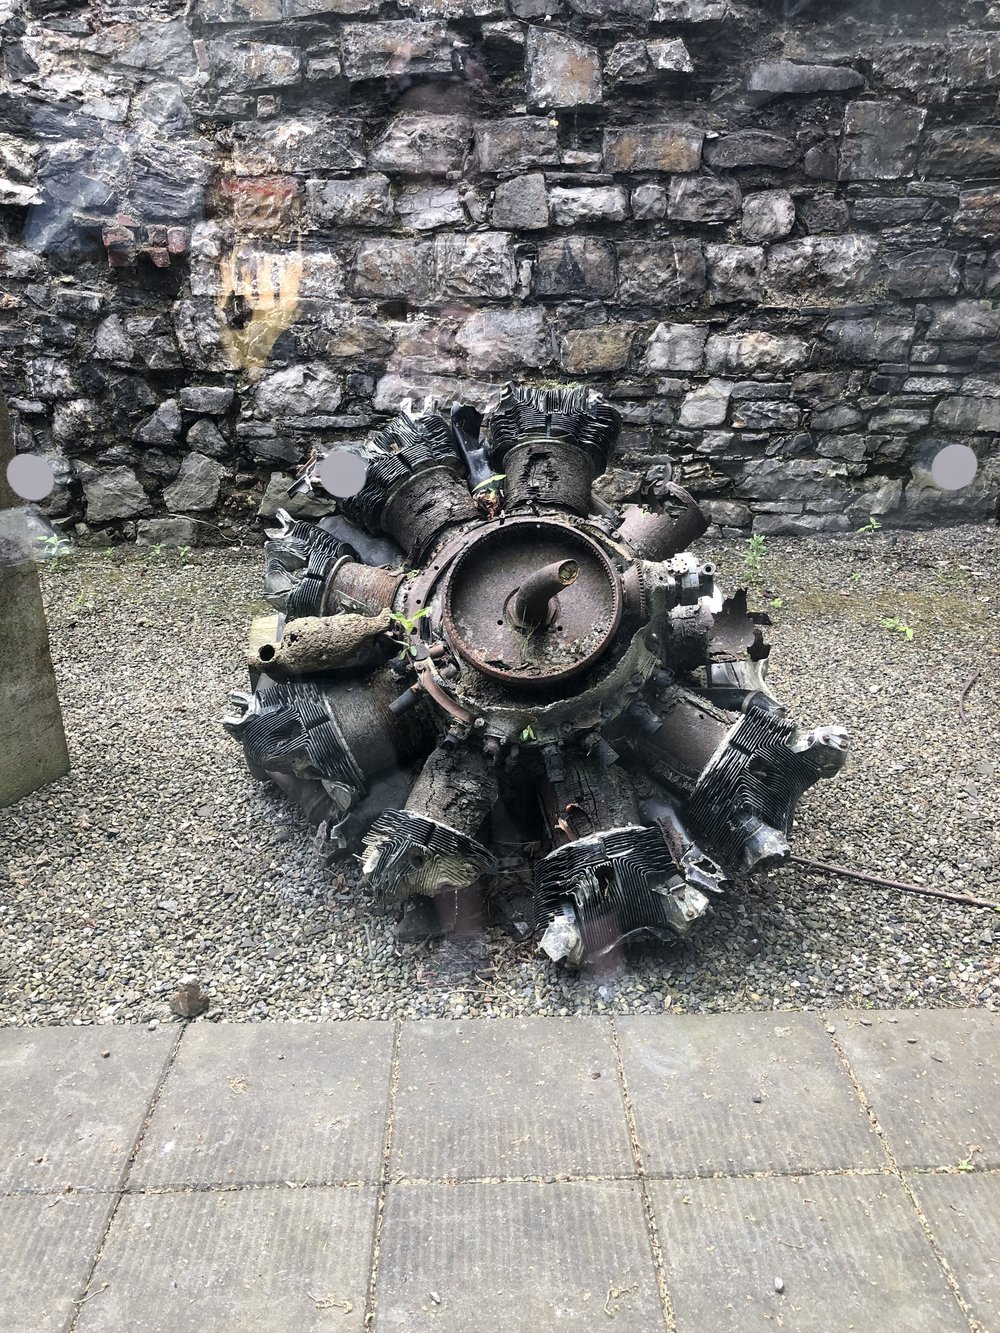 The remains of a B-17 engine that crashed in 1943.